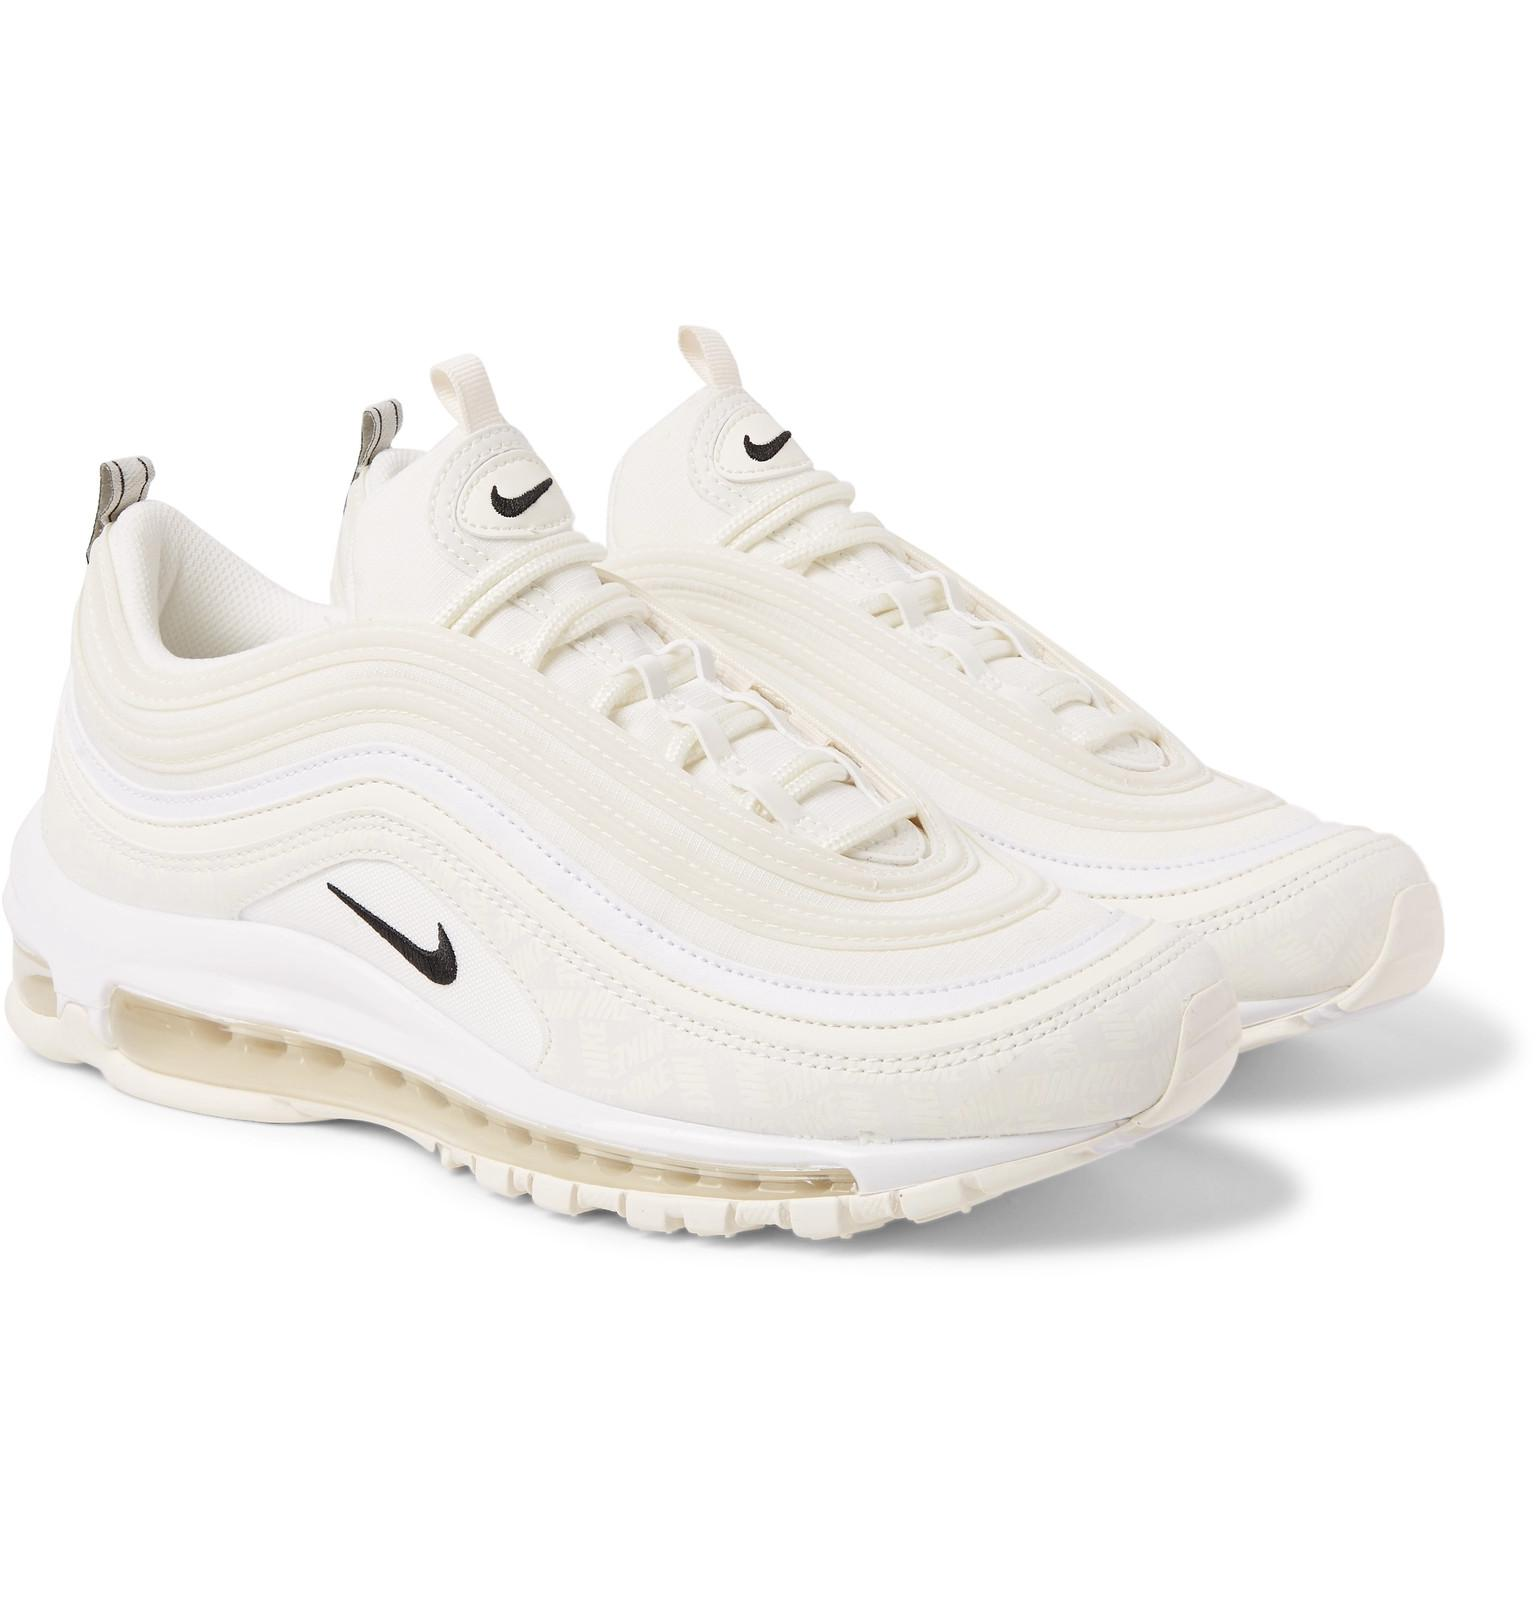 Men's White Air Max 97 Future Tech Leather trimmed Ripstop Sneakers